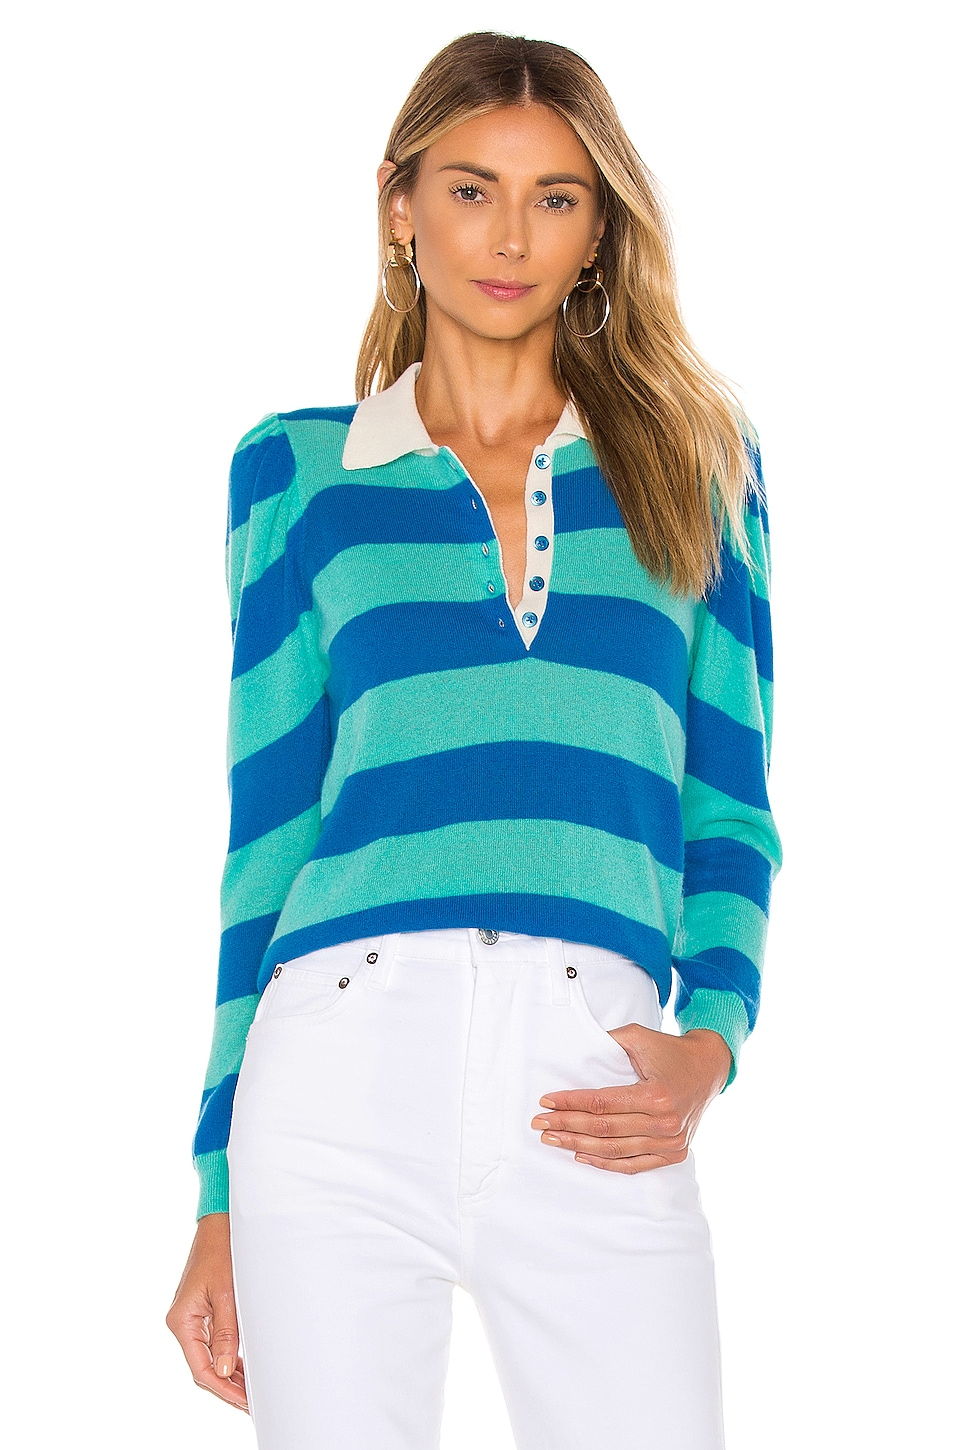 Autumn Cashmere Puff Sleeve Rugby Stripe Polo in Blue Jay & Lagoon Combo